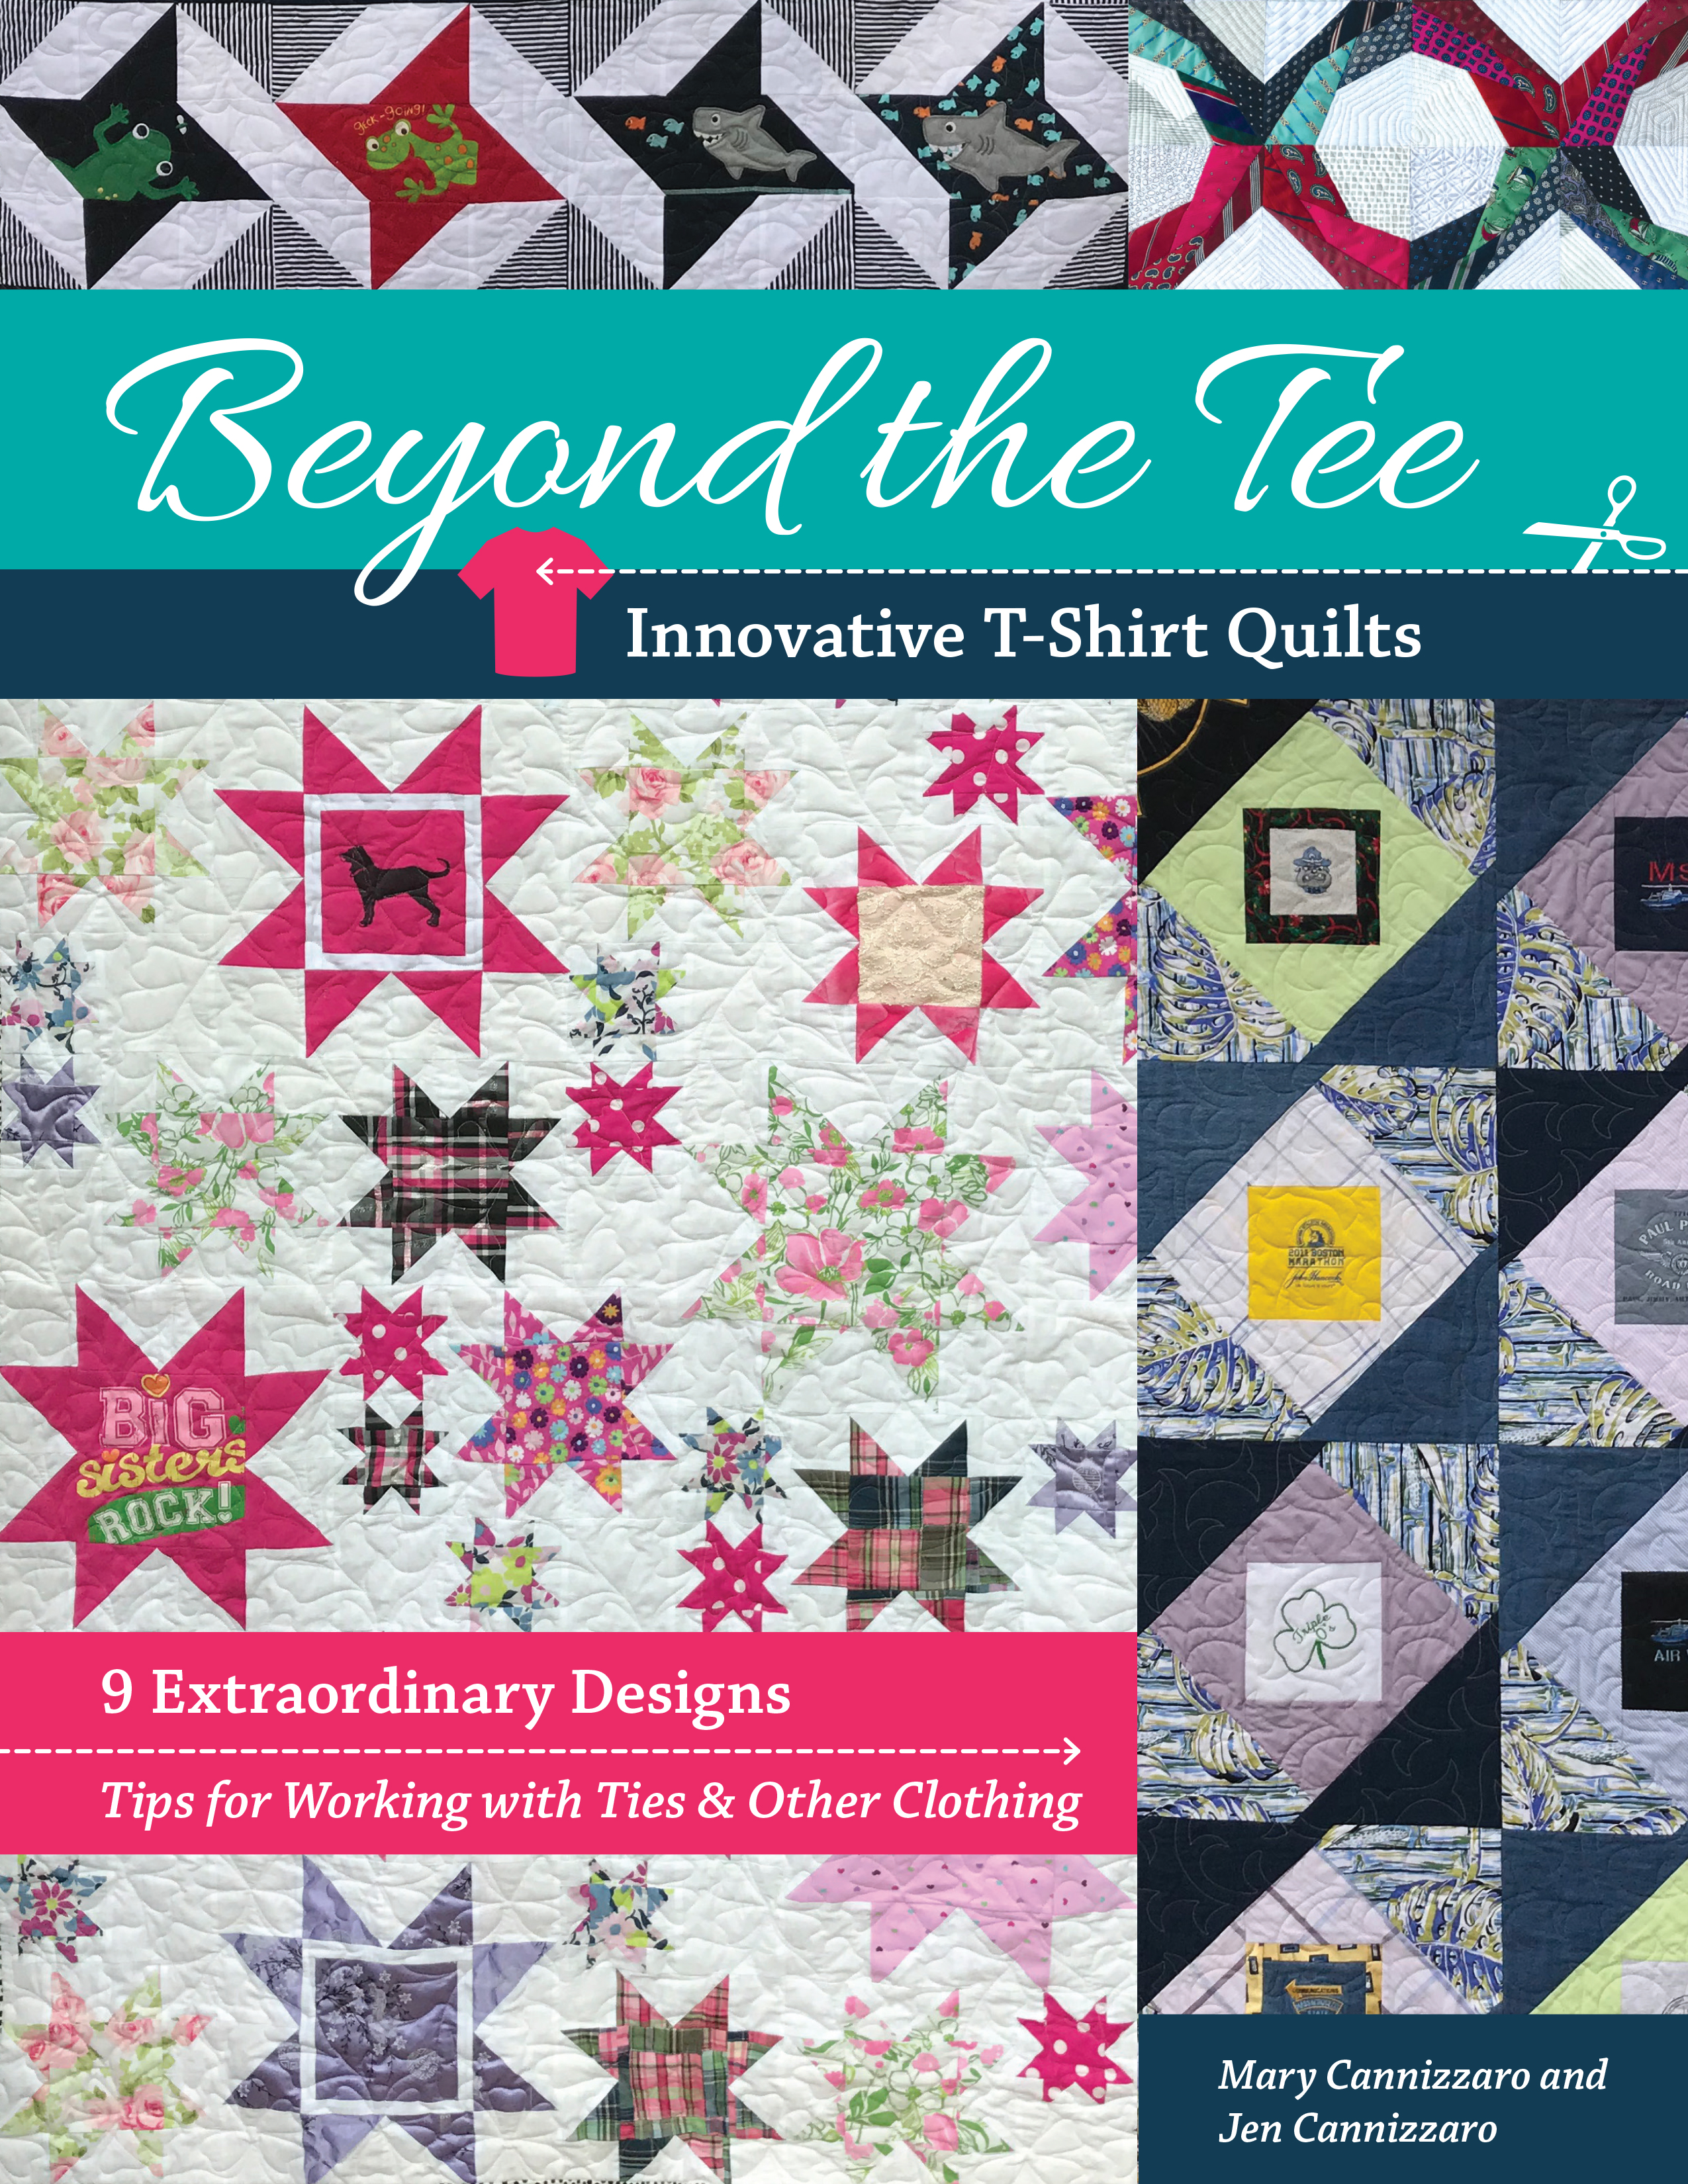 How to Make Extraordinary T-Shirt Quilts